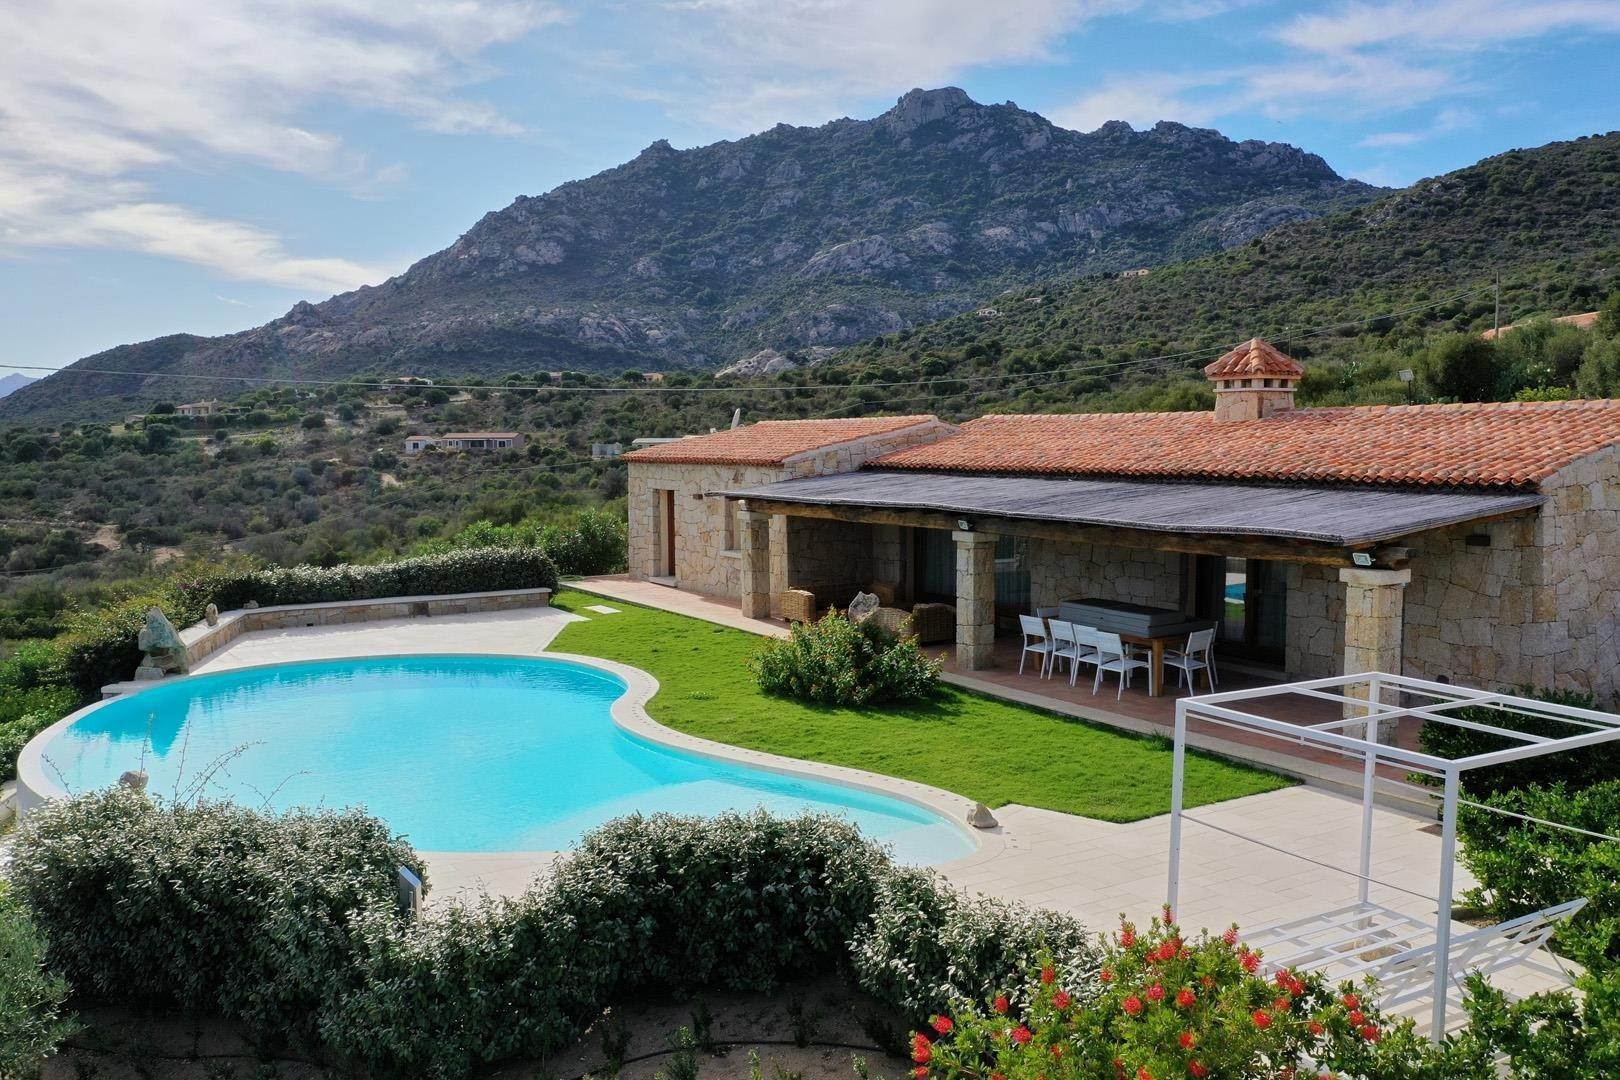 Single Family Home por un Venta en Stazzu Longevity Porto Rotondo, Italia